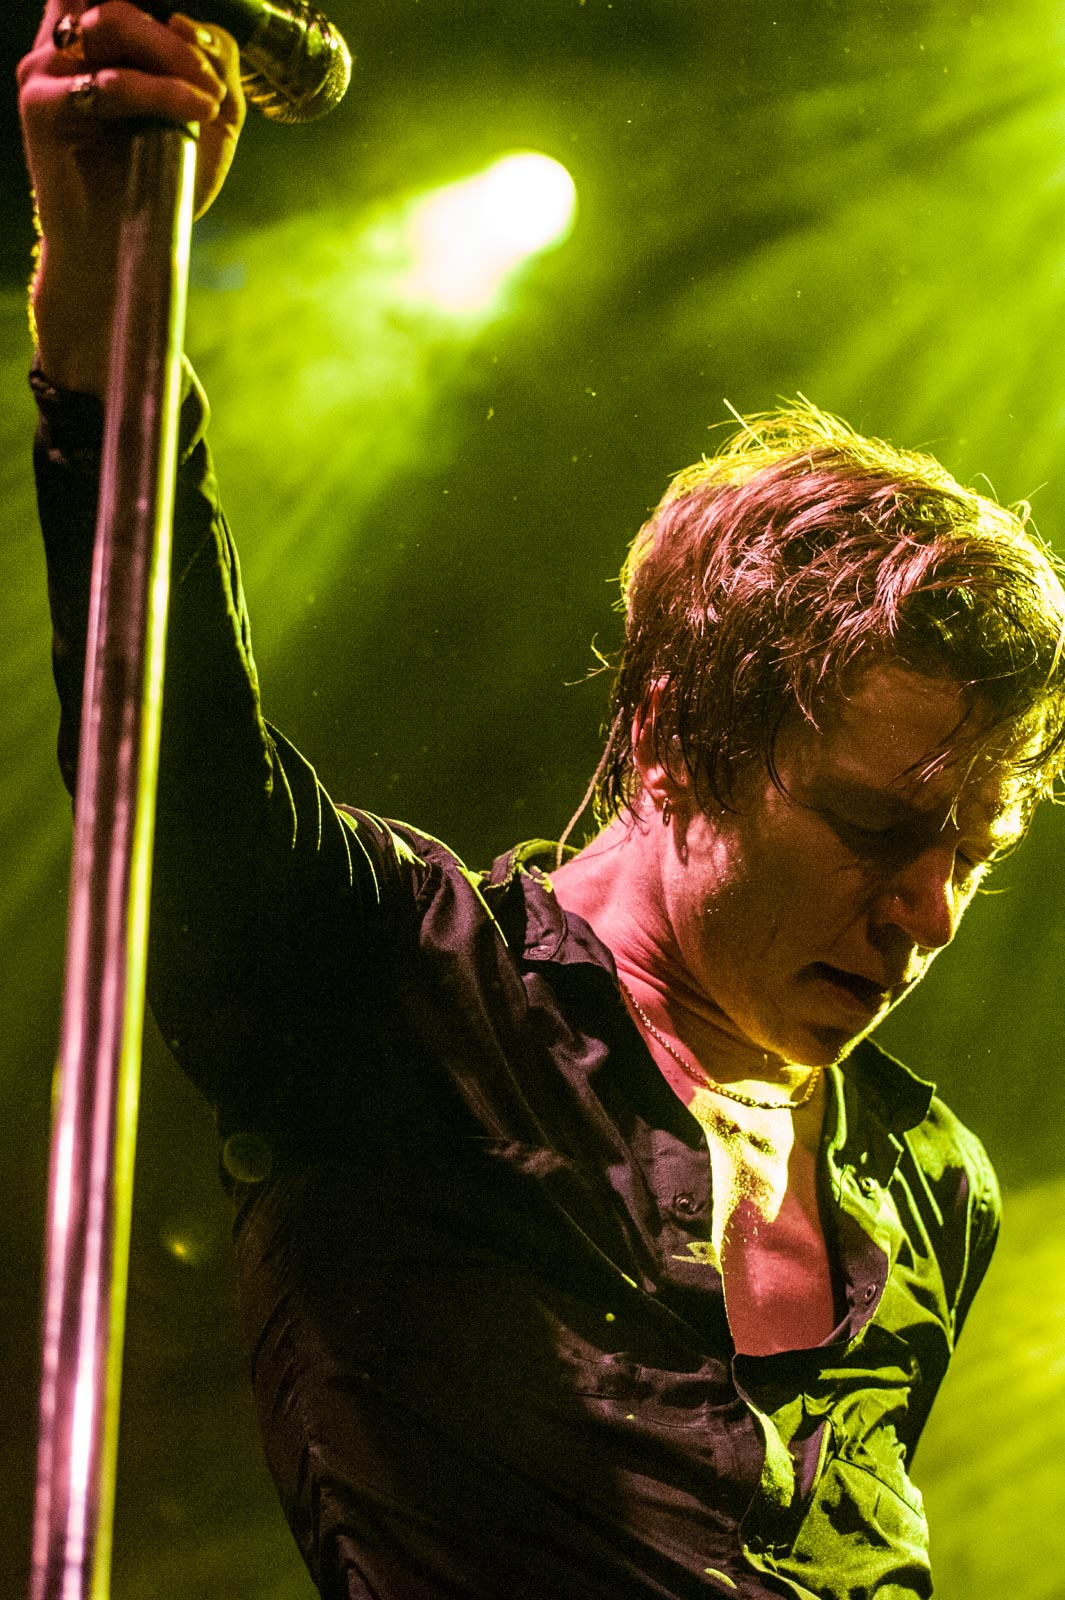 Concierto de Cage the elephant en Apolo, Barcelona.